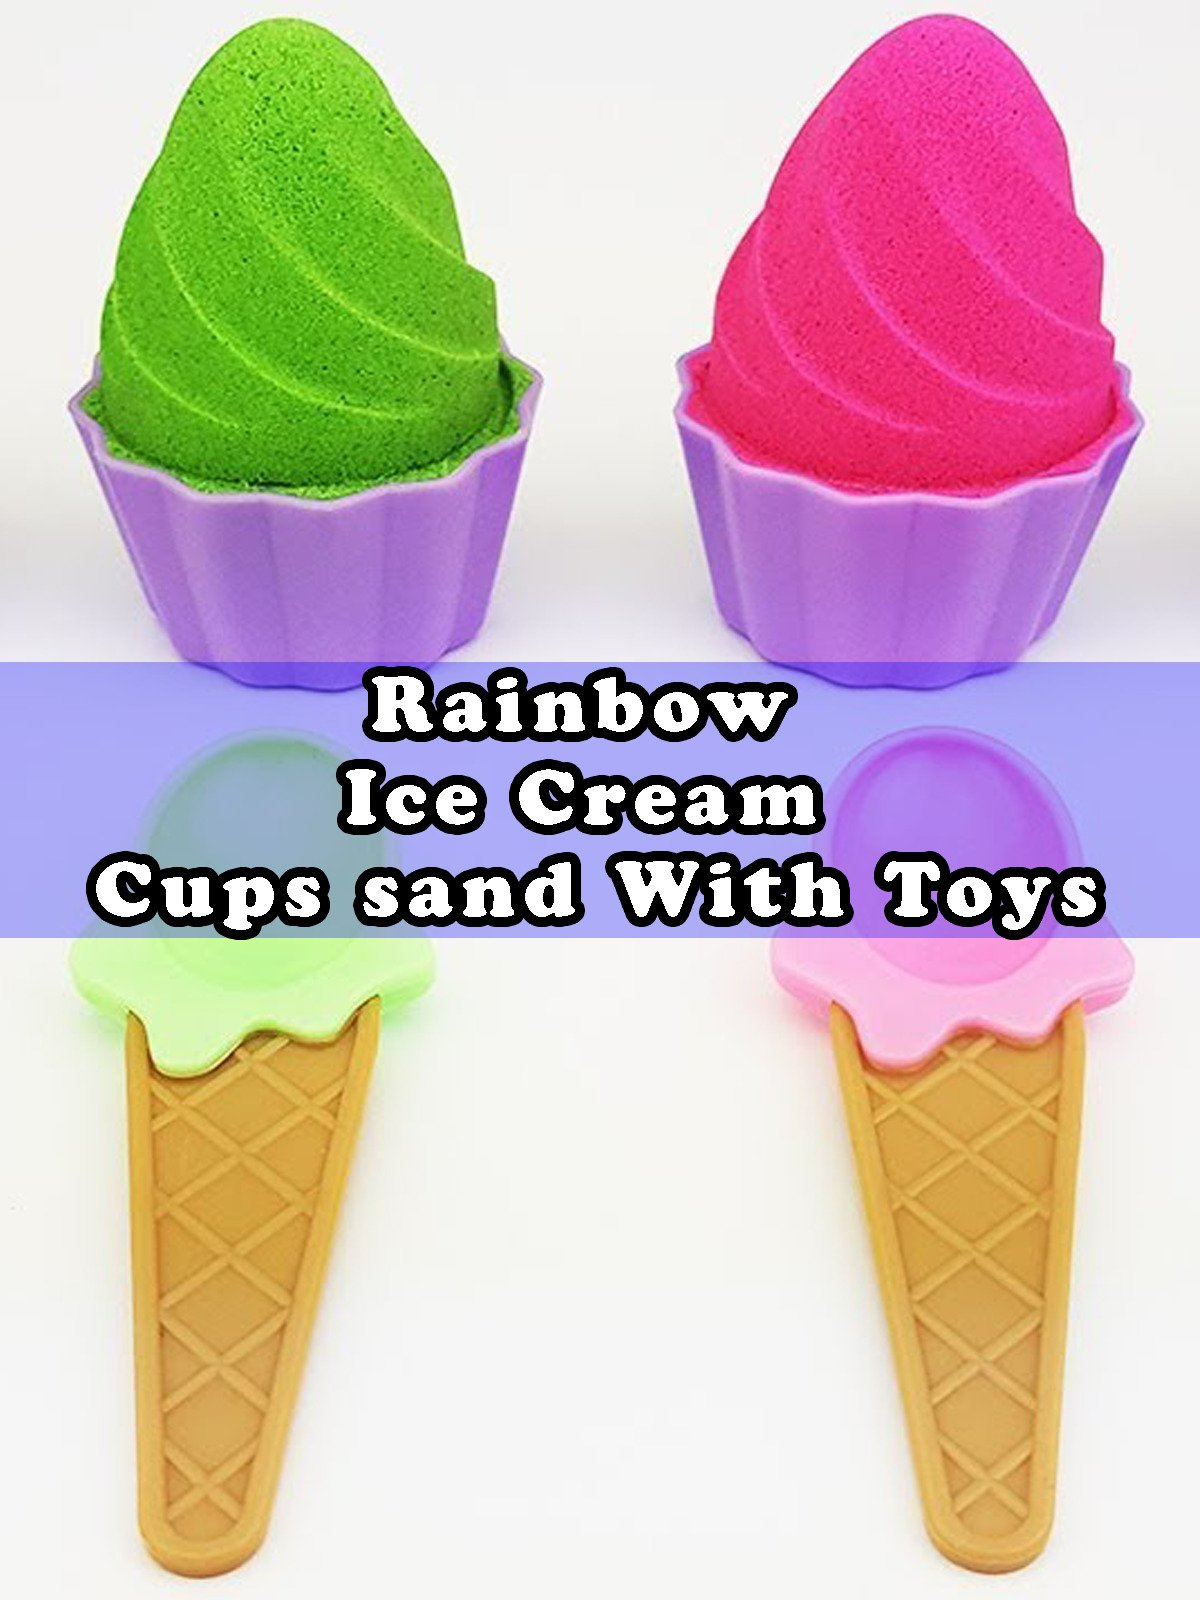 Rainbow Ice Cream Cups sand With Toys